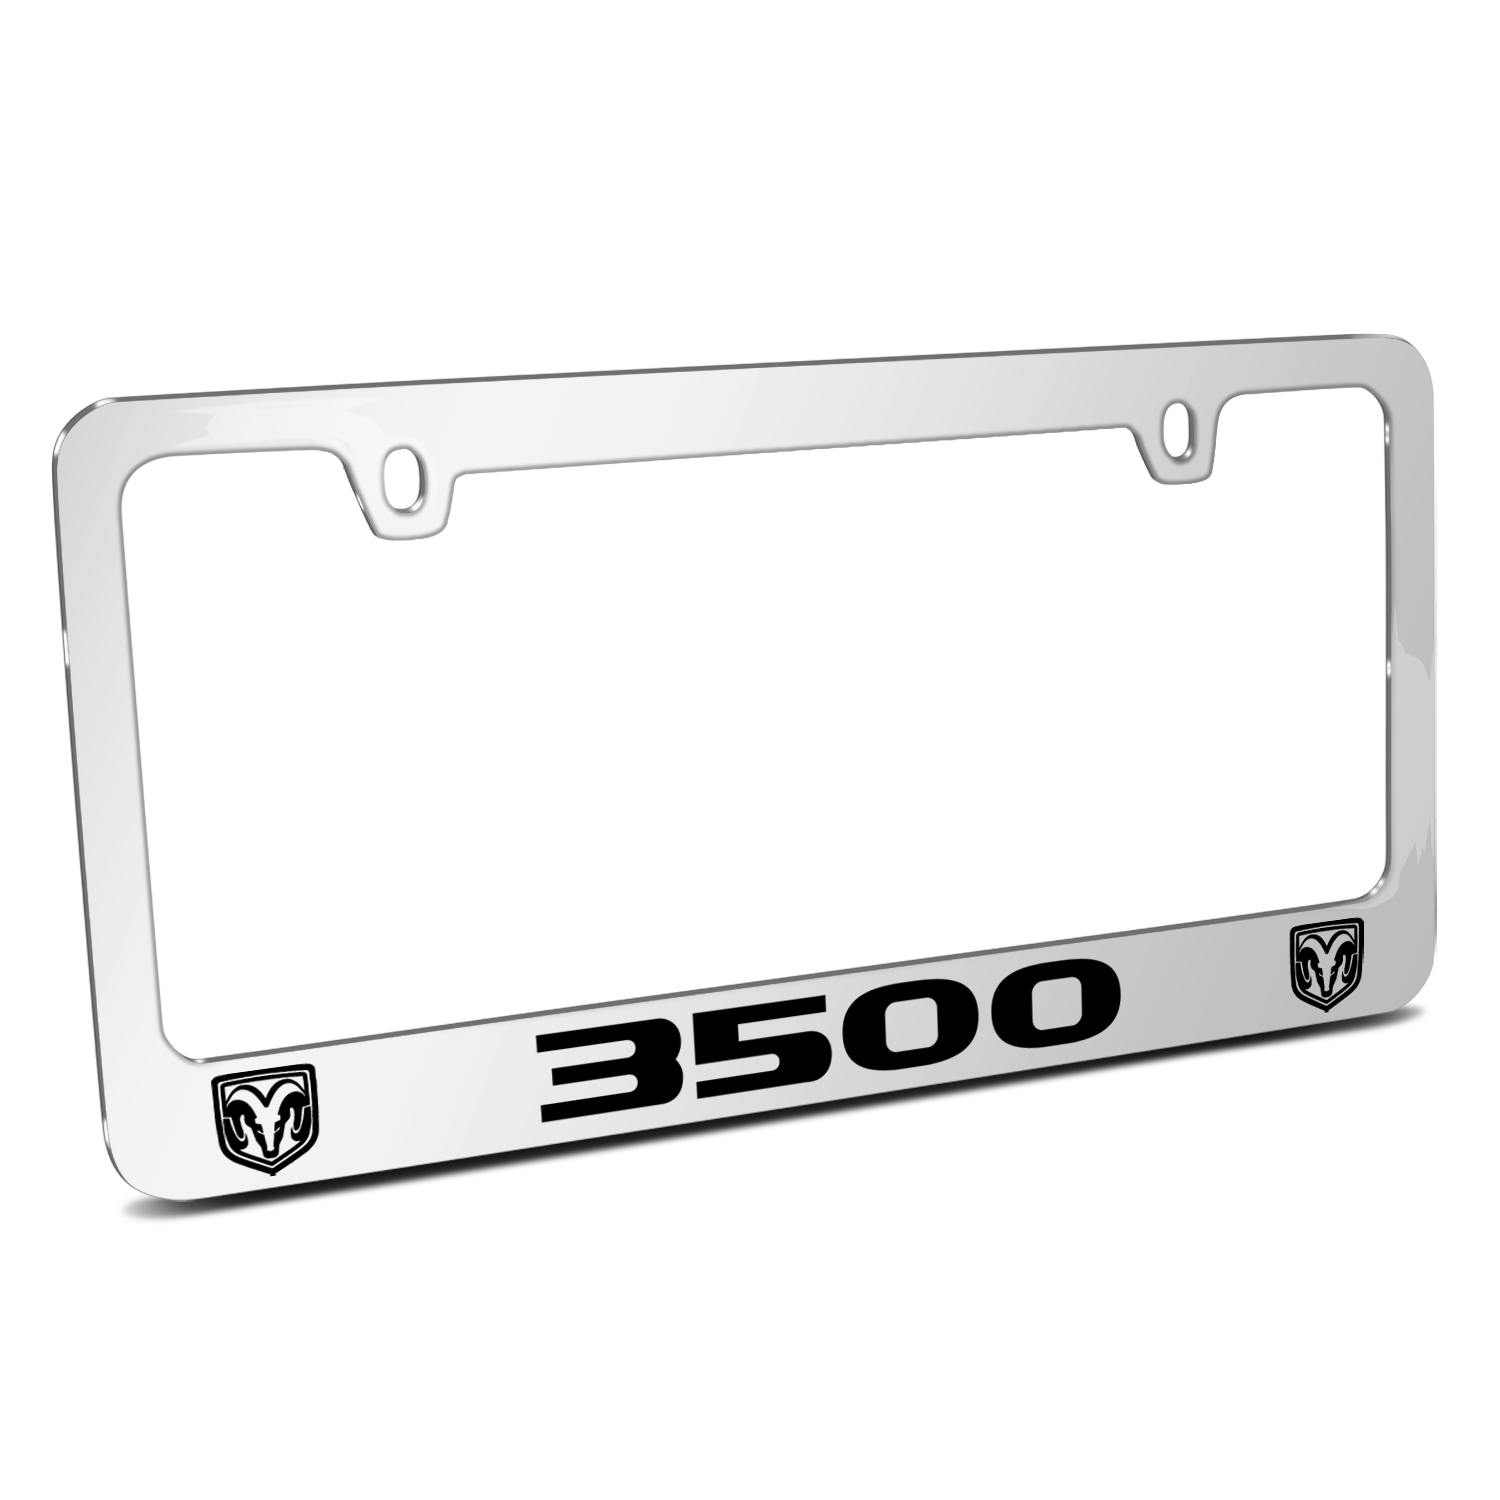 RAM 3500 Dual Logos Mirror Chrome Metal License Plate Frame